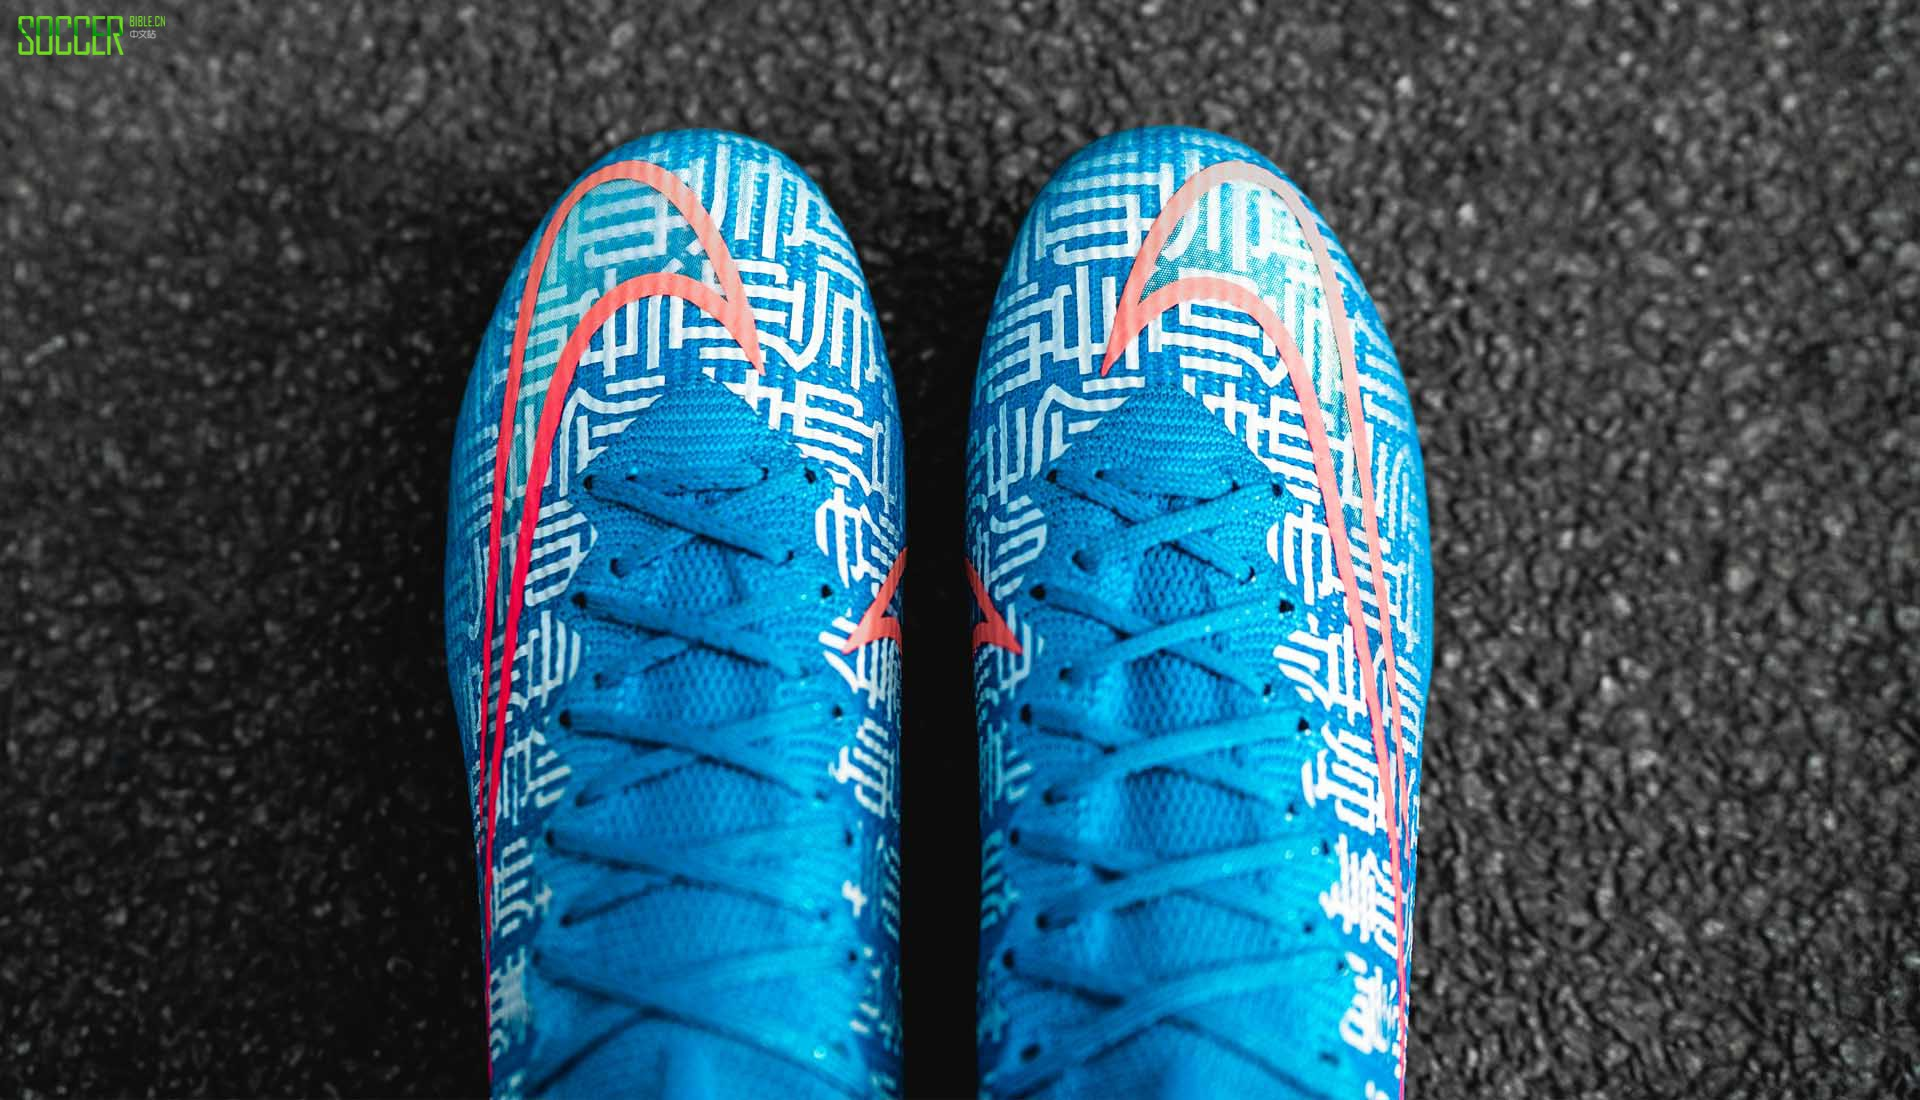 3-cr7-china-mercurial